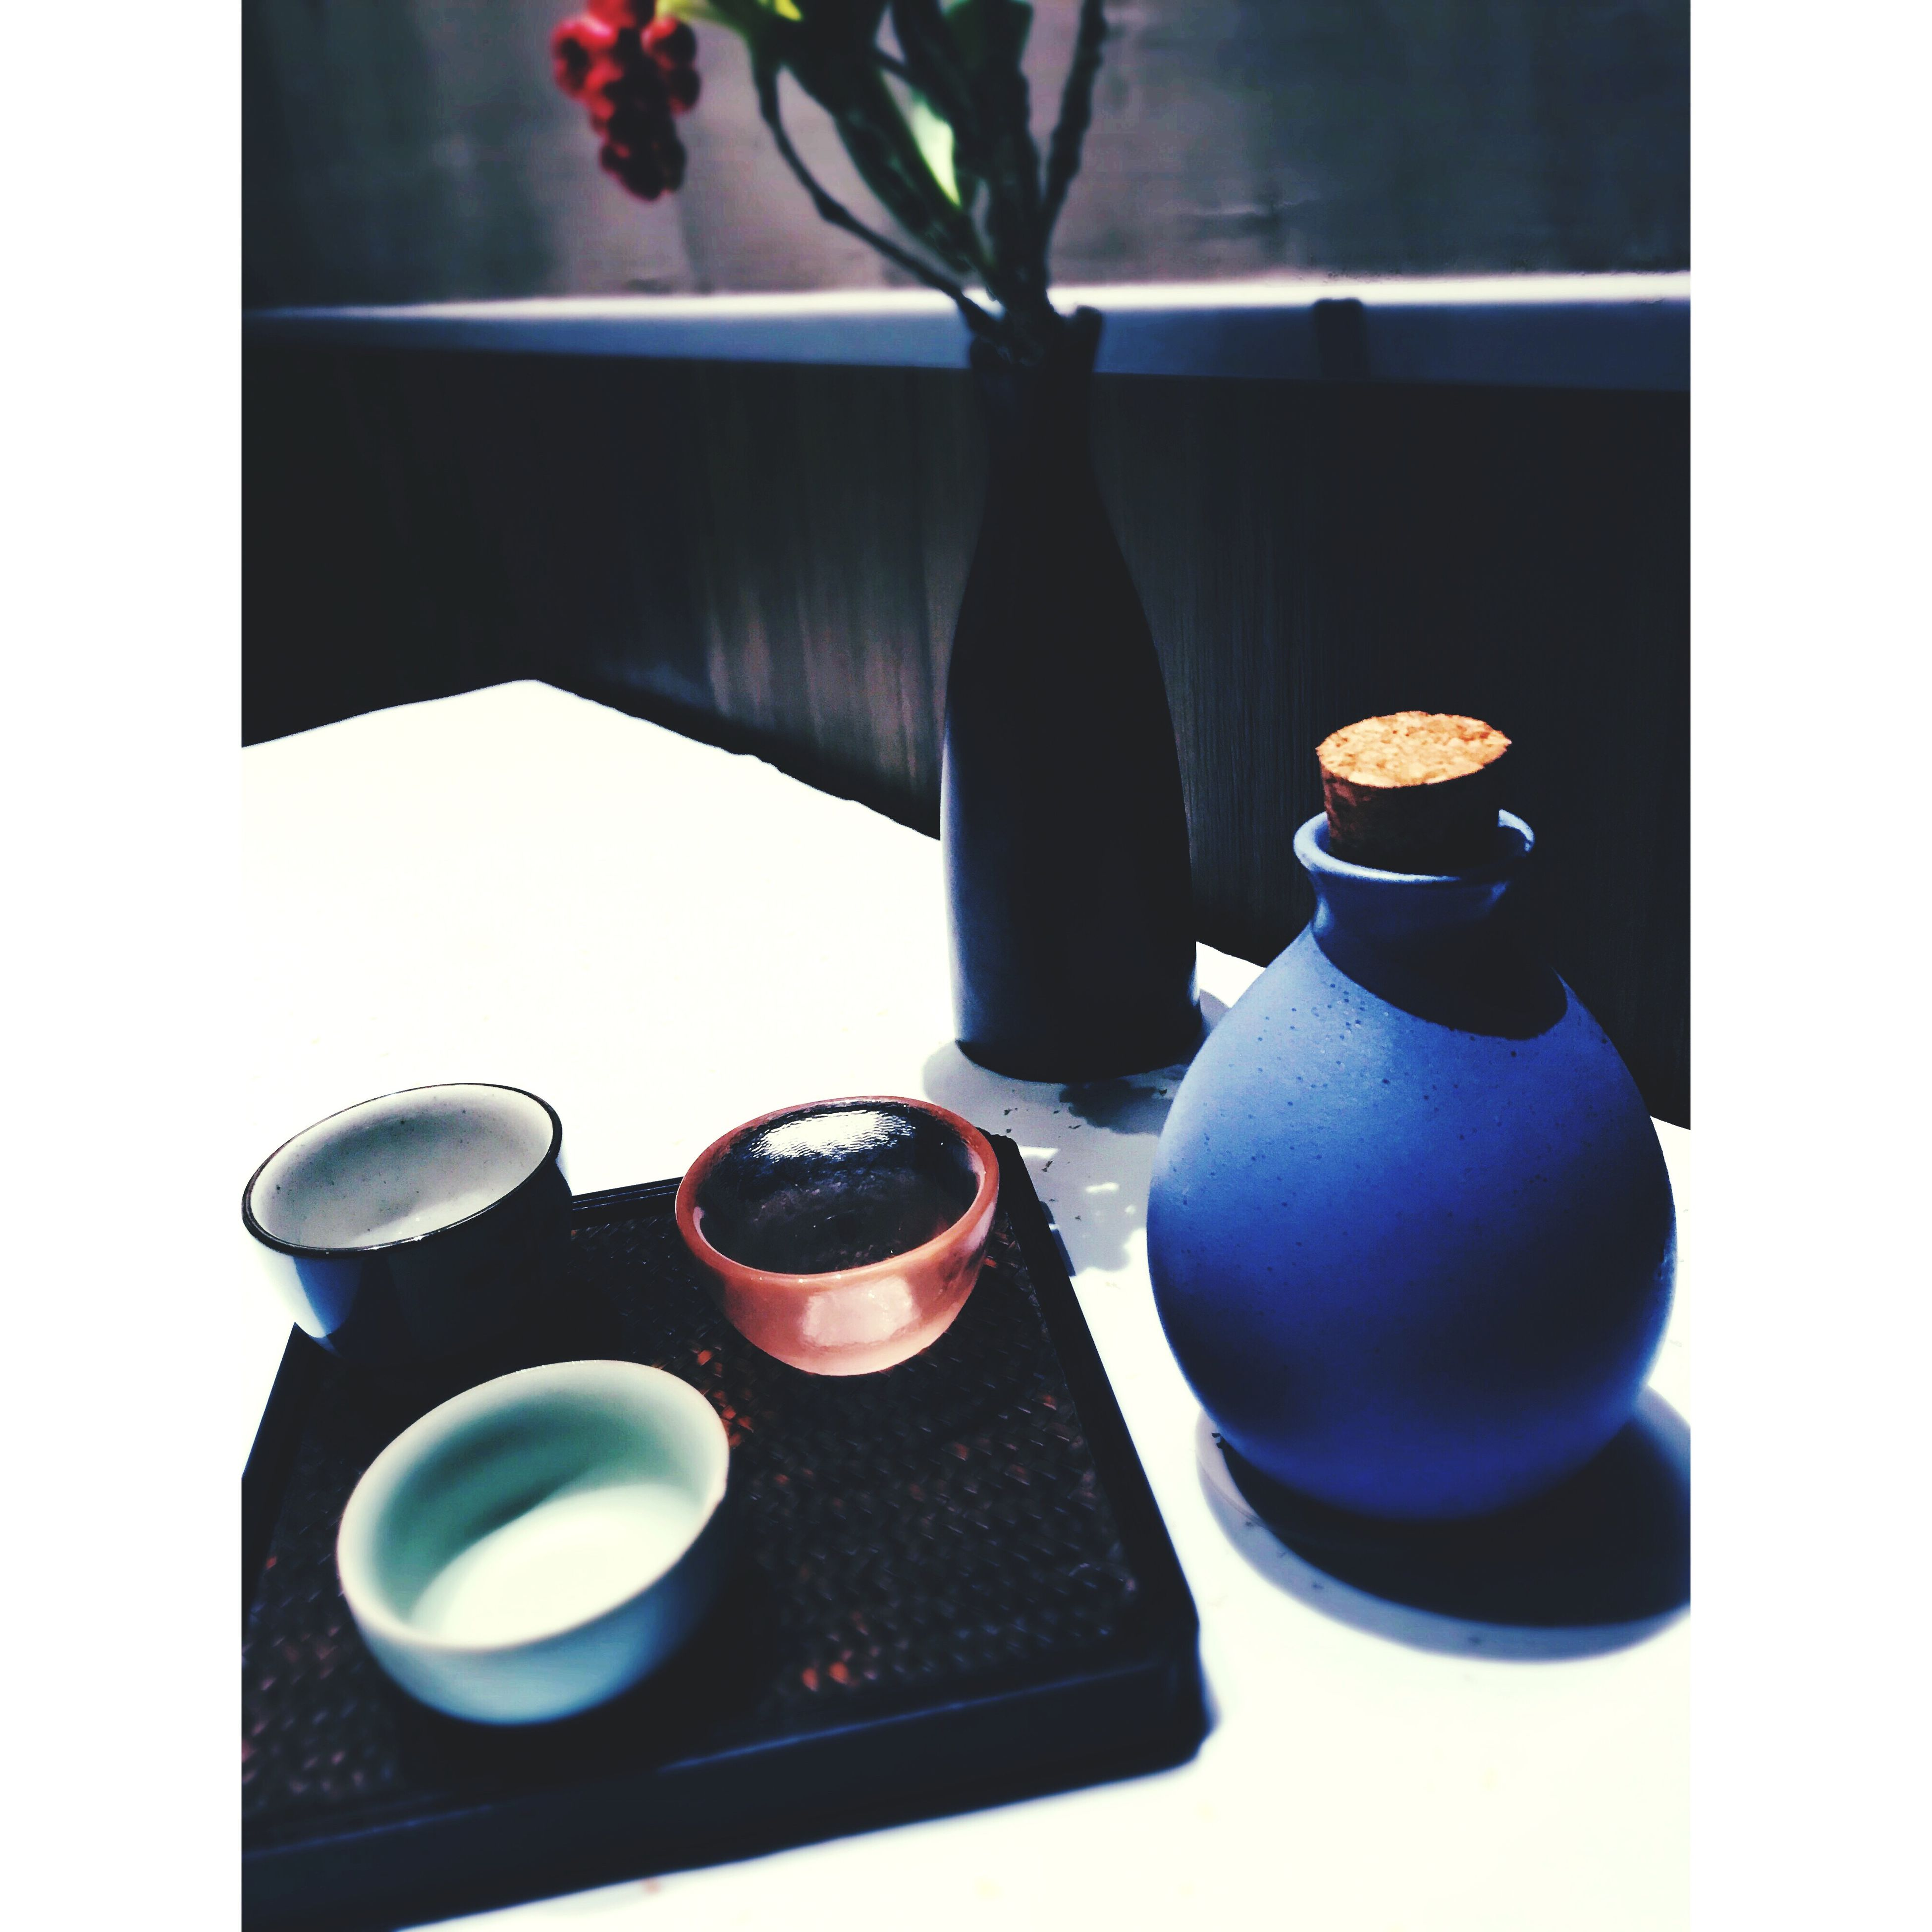 still life, table, indoors, black color, no people, close-up, day